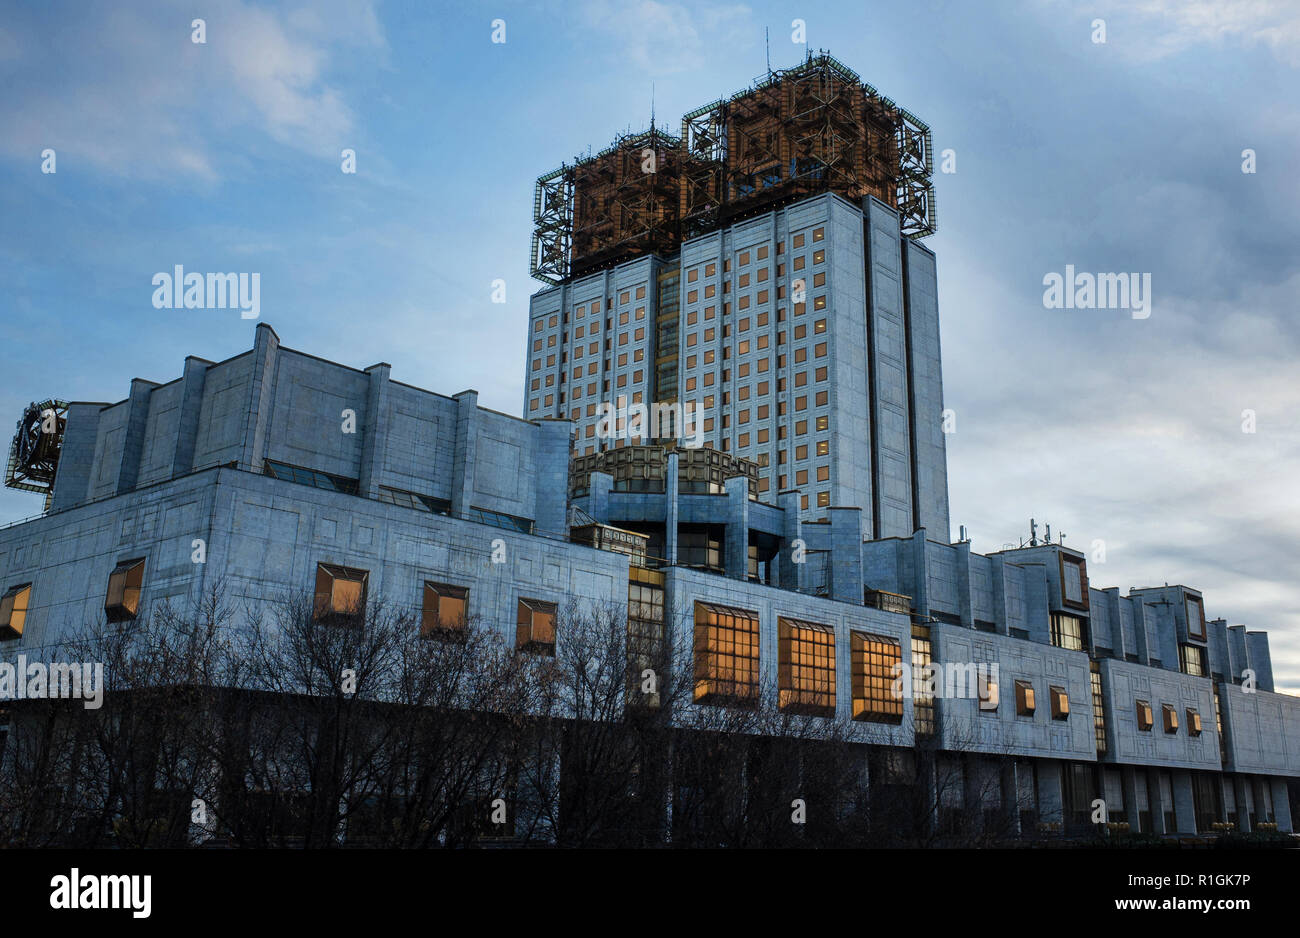 30 October 2018 Moscow, Russia. The Presidium of the Russian Academy of Sciences in Moscow. - Stock Image